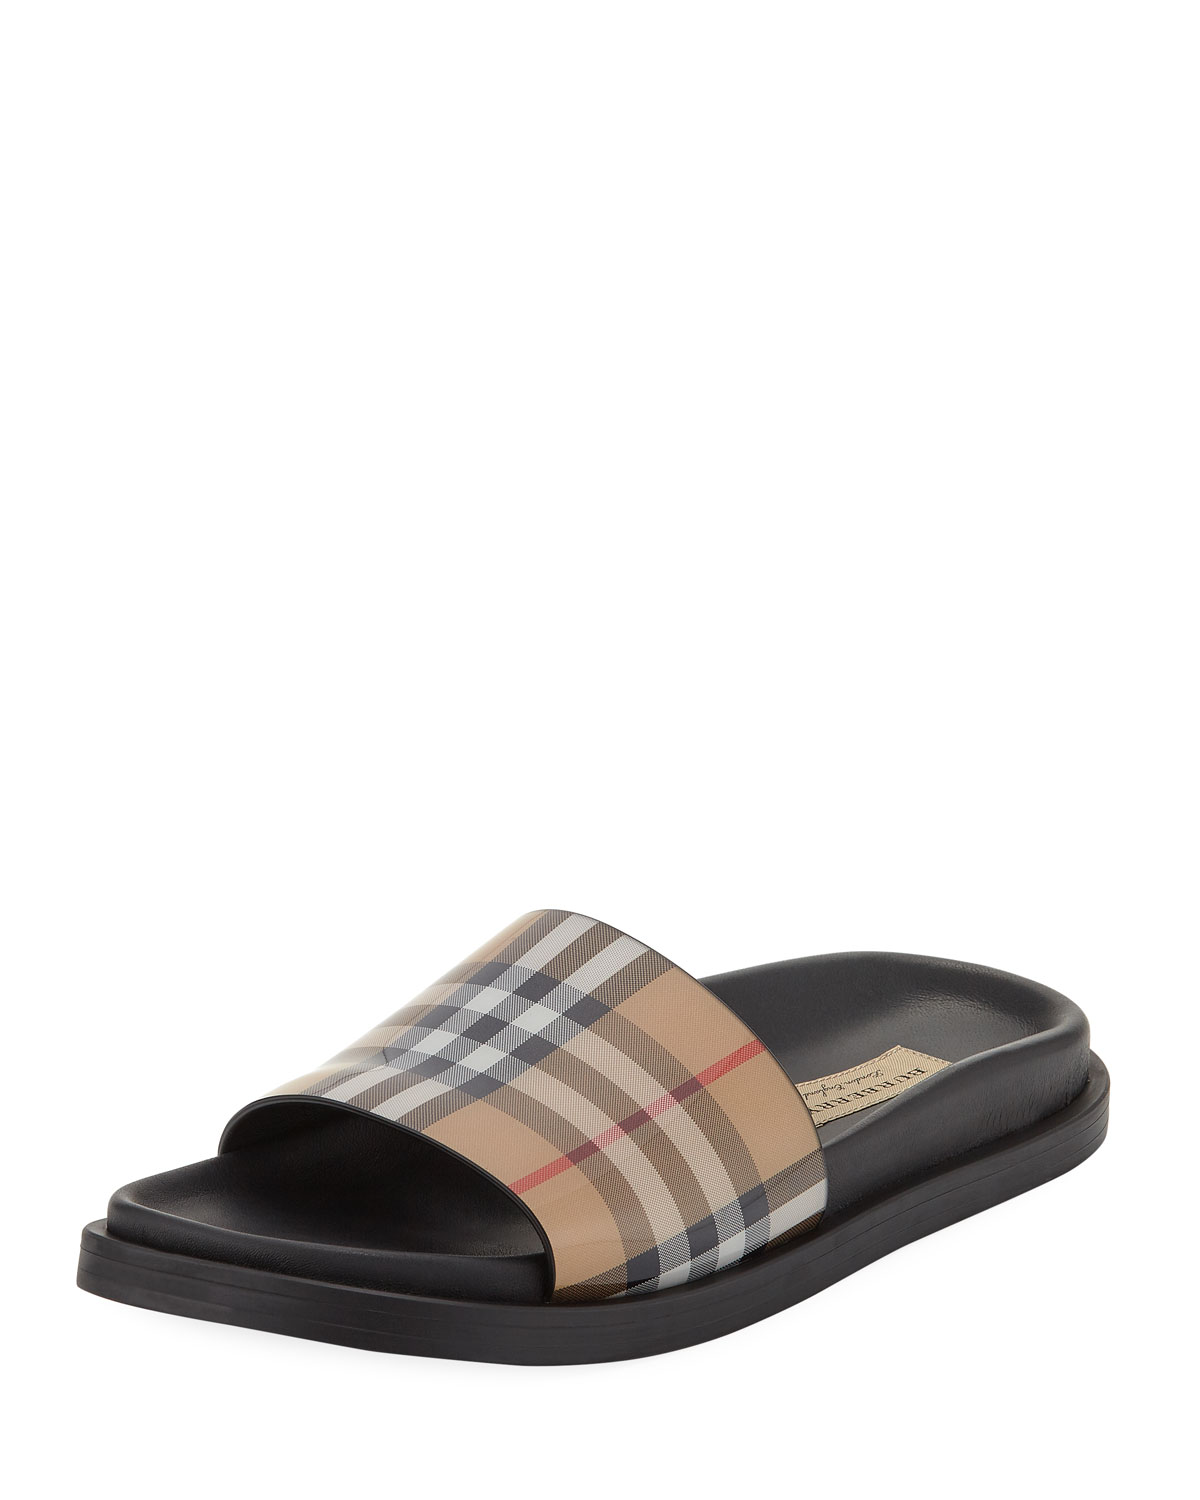 978de8254a23 Burberry English Icons Vintage Check Slide Sandal